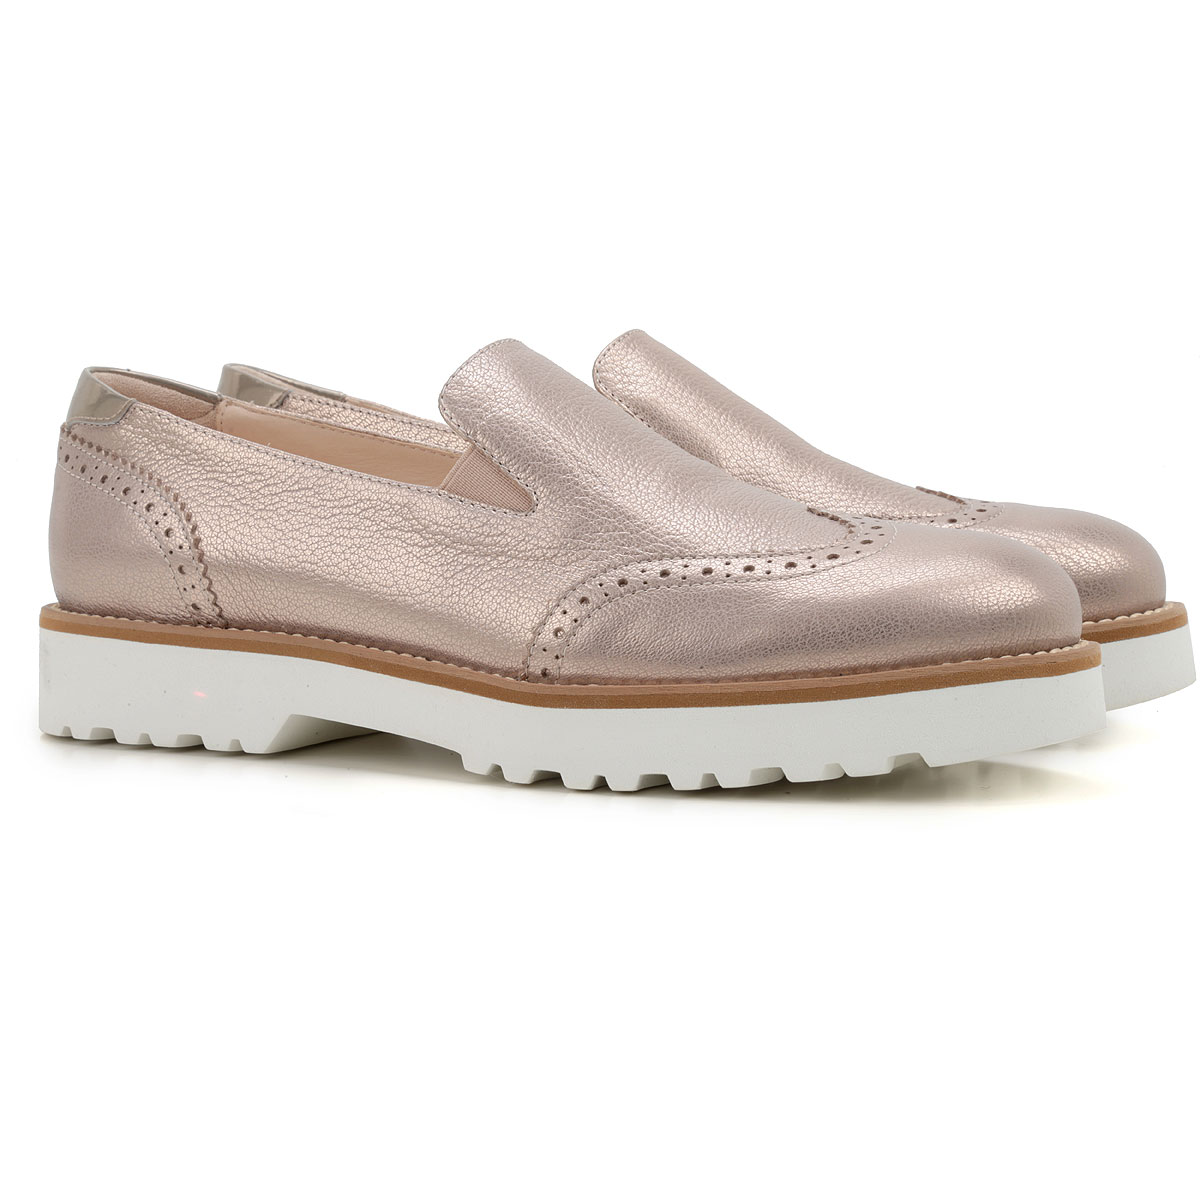 Hogan Brogues Oxford Shoes On Sale in Outlet, Pale Gold, Leather, 2019, 10 9